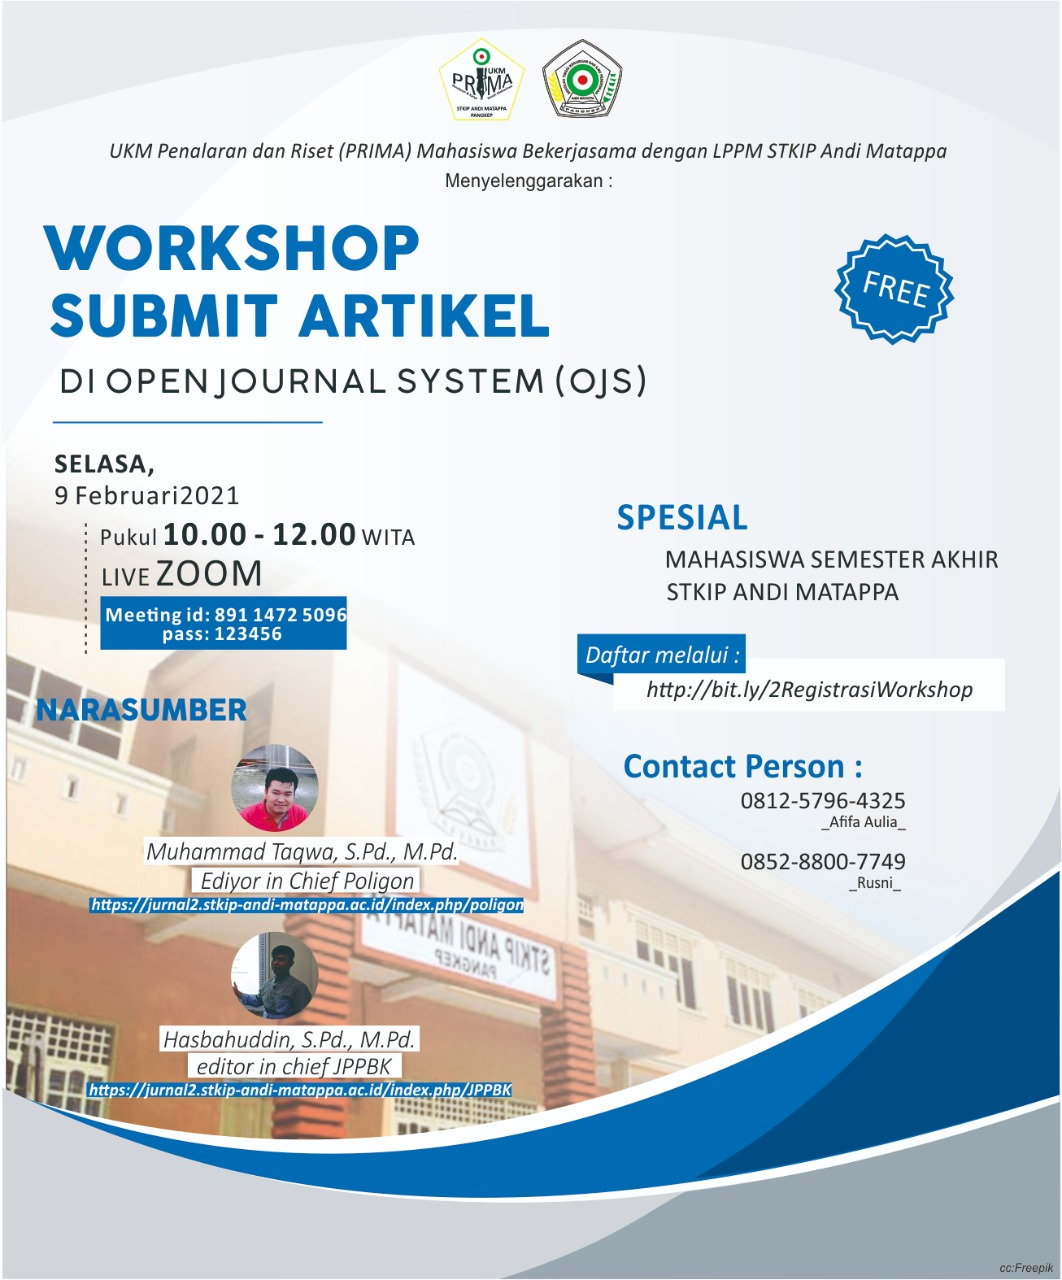 UKM Penalaran dan Riset (Prima) dan LPPM STKIP Andi Matappa akan gelar Workshop submit artikel di Open Journal System (OJS)